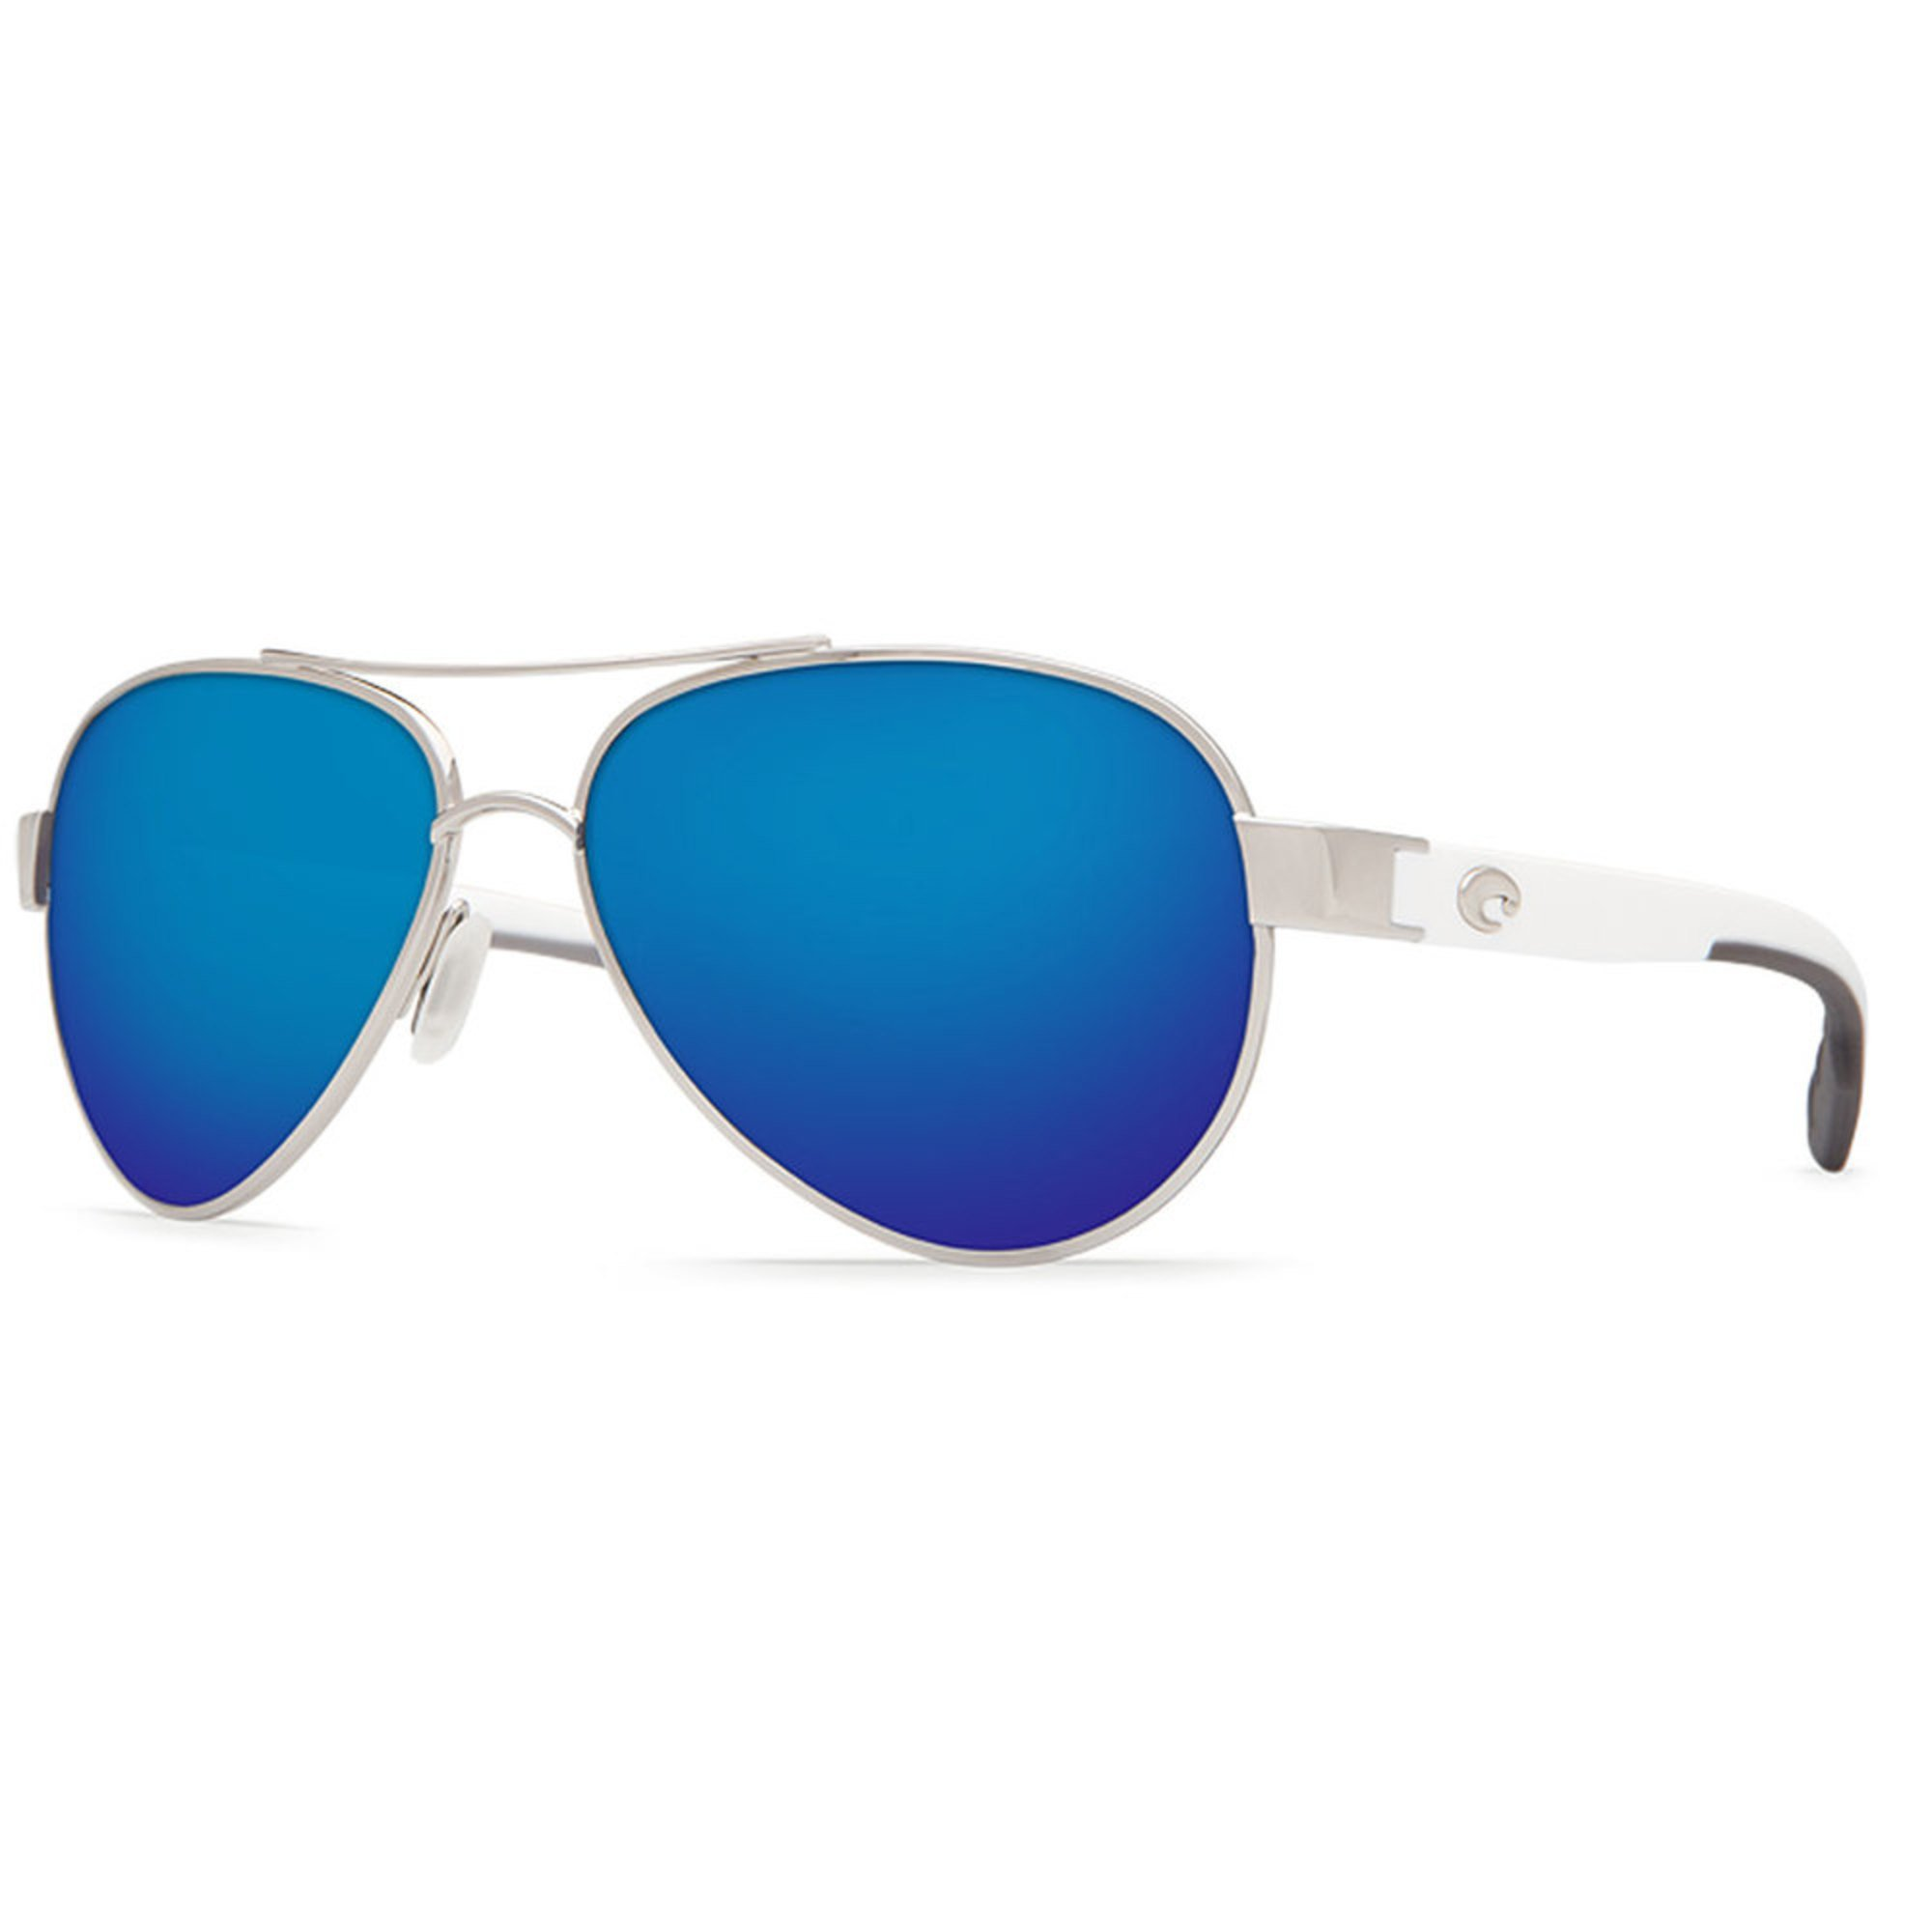 c83eef26953b7 Costa Del Mar Unisex Polarized Loreto Palladium Sunglasses